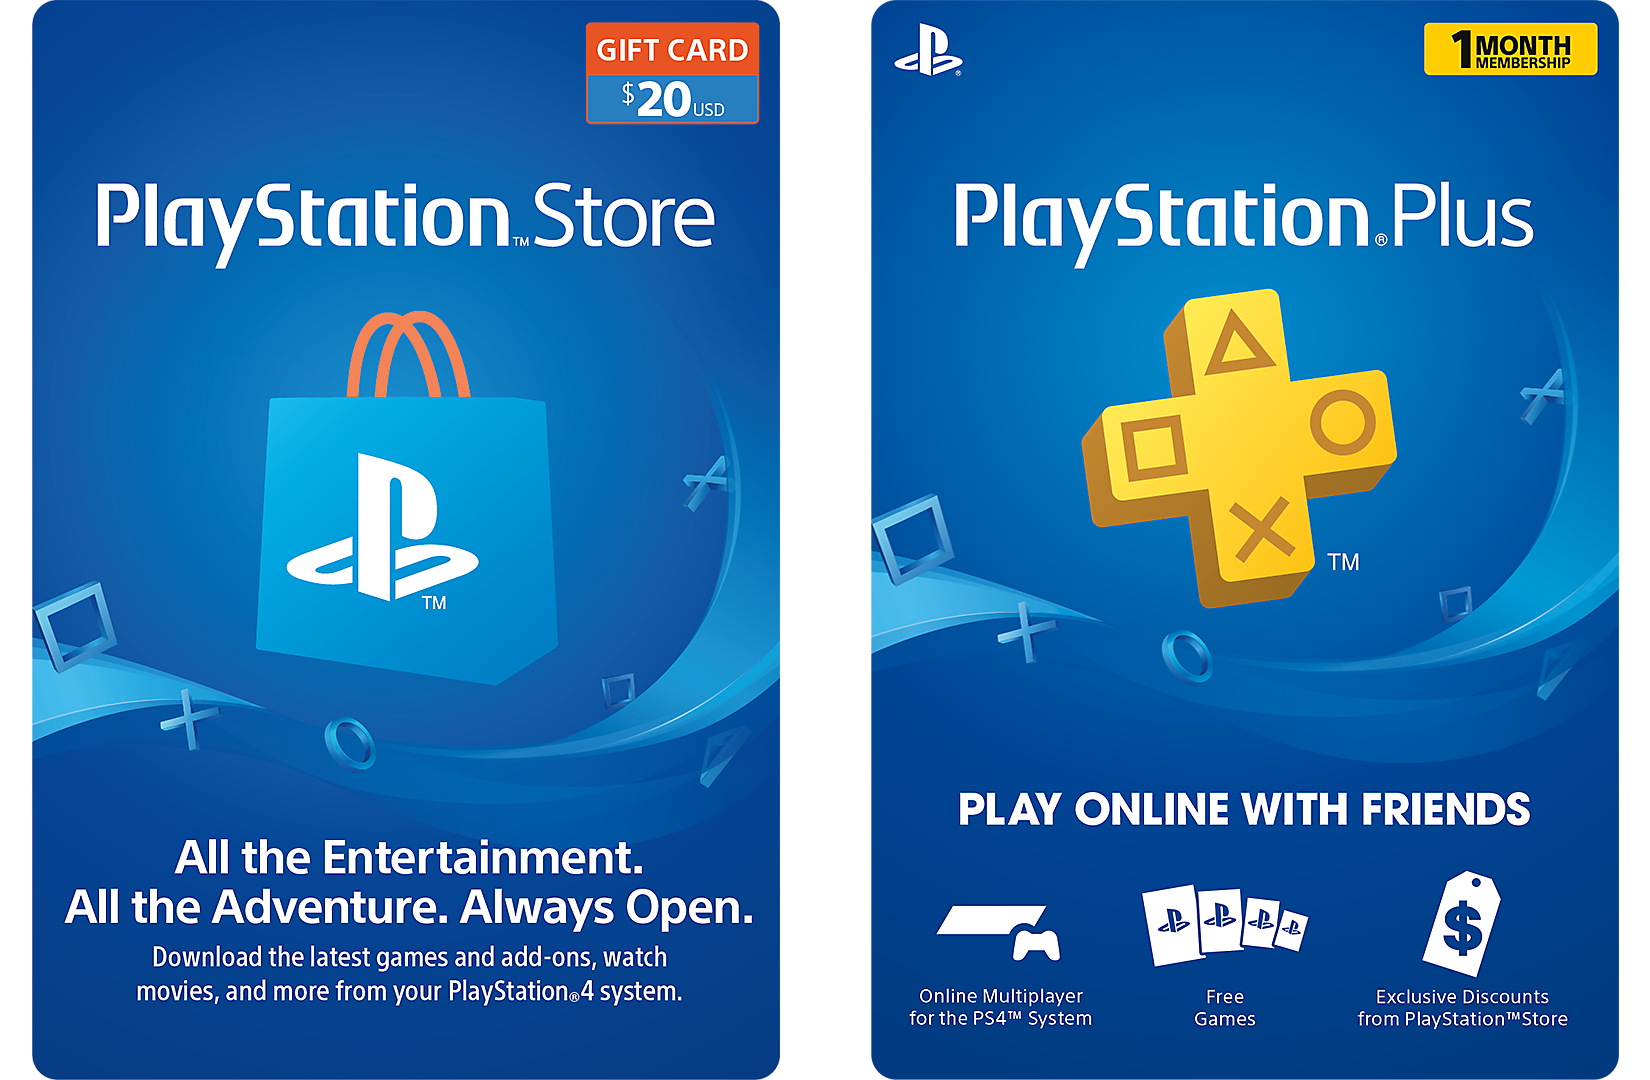 Psn Cards Playstation